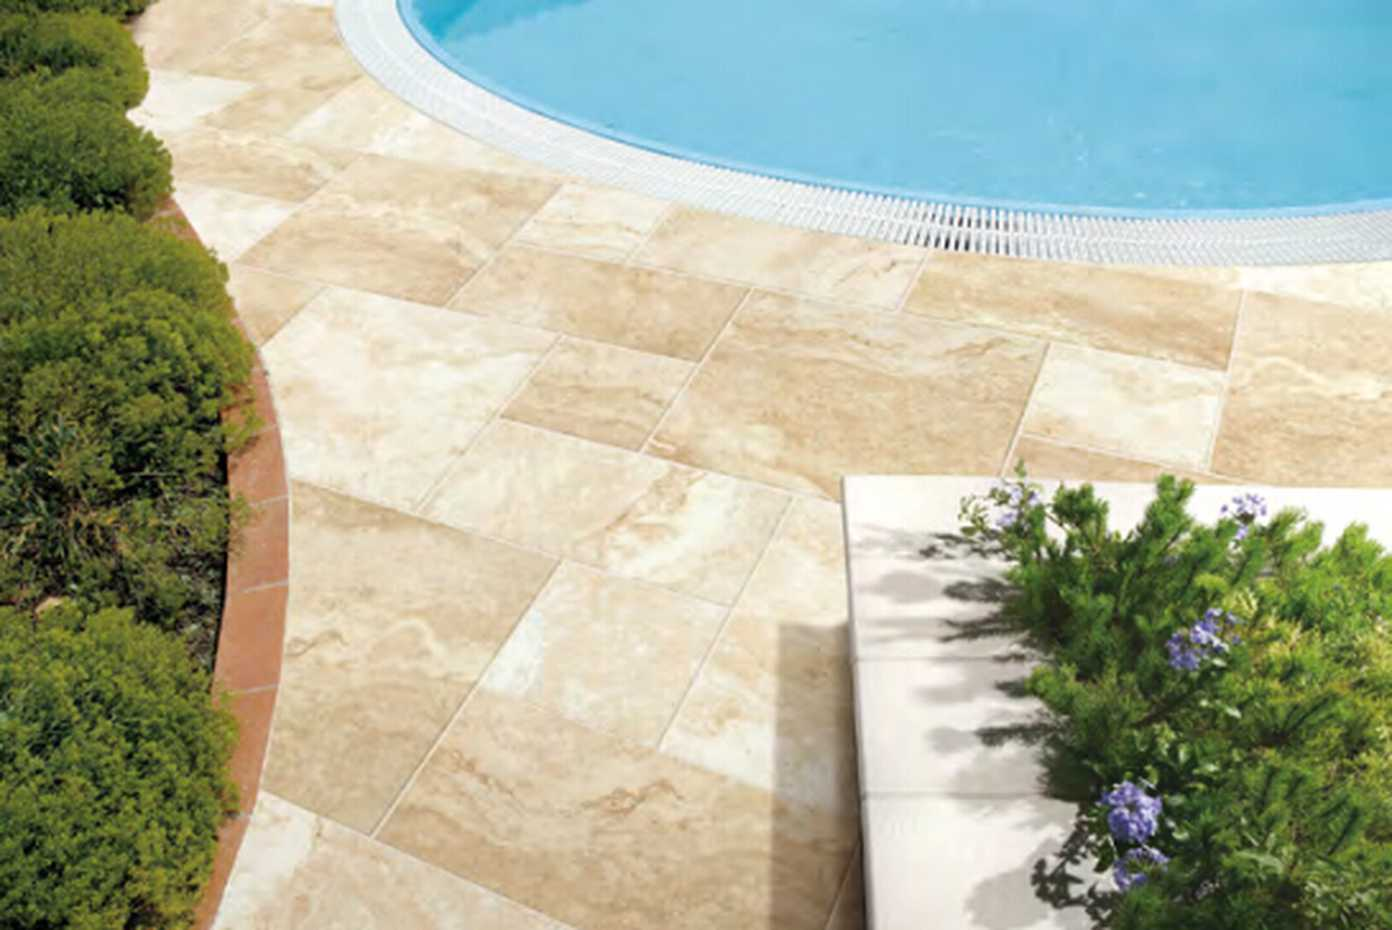 Travertine Series 2cm by Viewgres product image 4